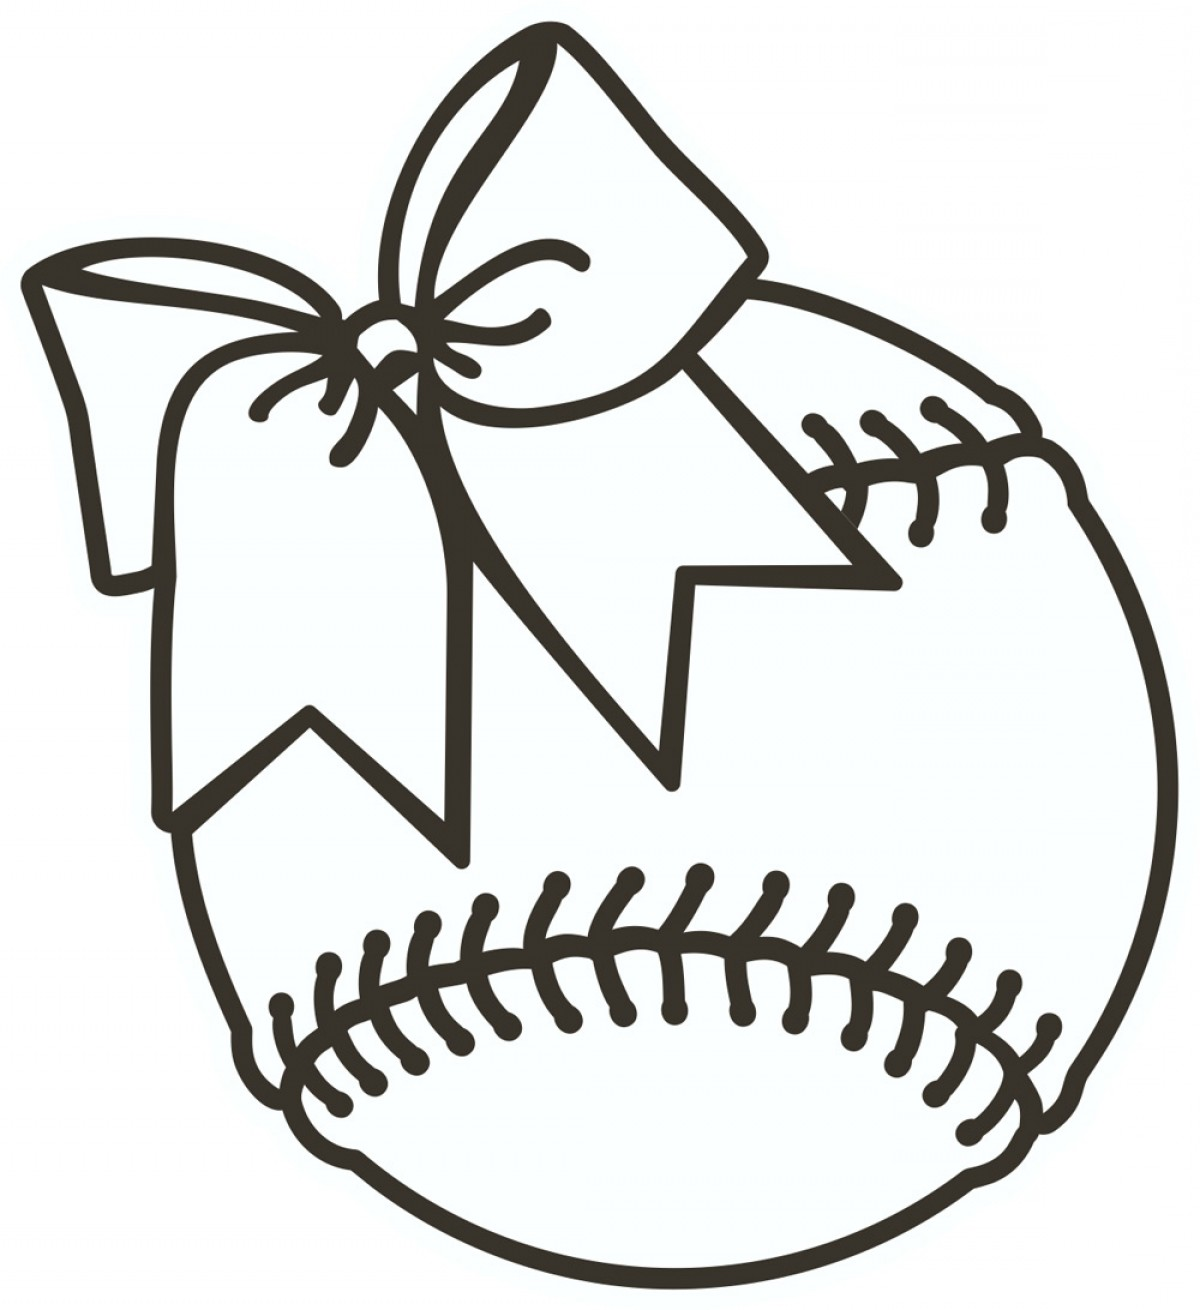 hight resolution of softball clipart vector transparent download